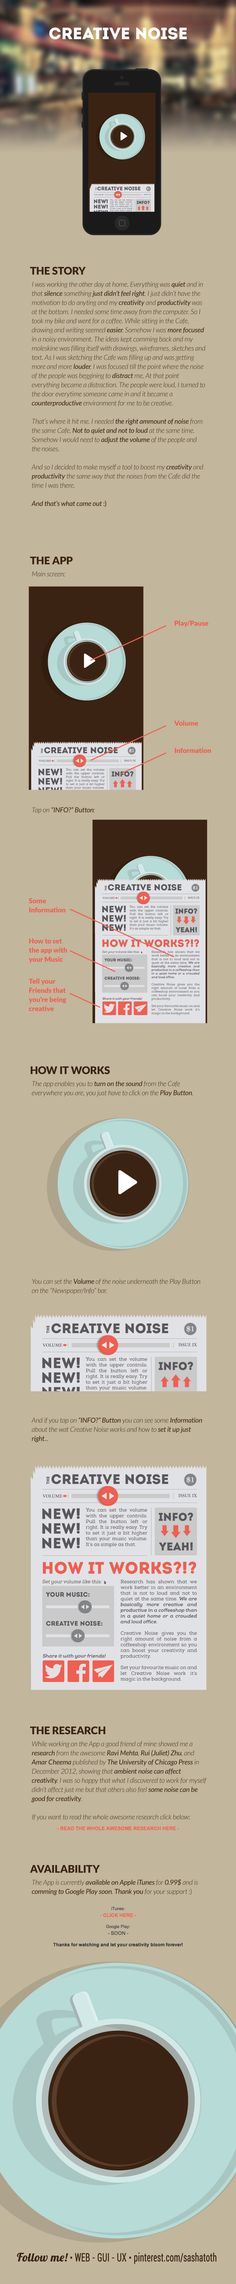 Creative Noise is an App that helps you boost your creativity and productivity using the noises/sounds from an Cafe environment but adjustable with volume controls so you get the right amount of noise for a distraction free working environment. by Igor Štumberger, via Behance *** #app #gui #ui #behance